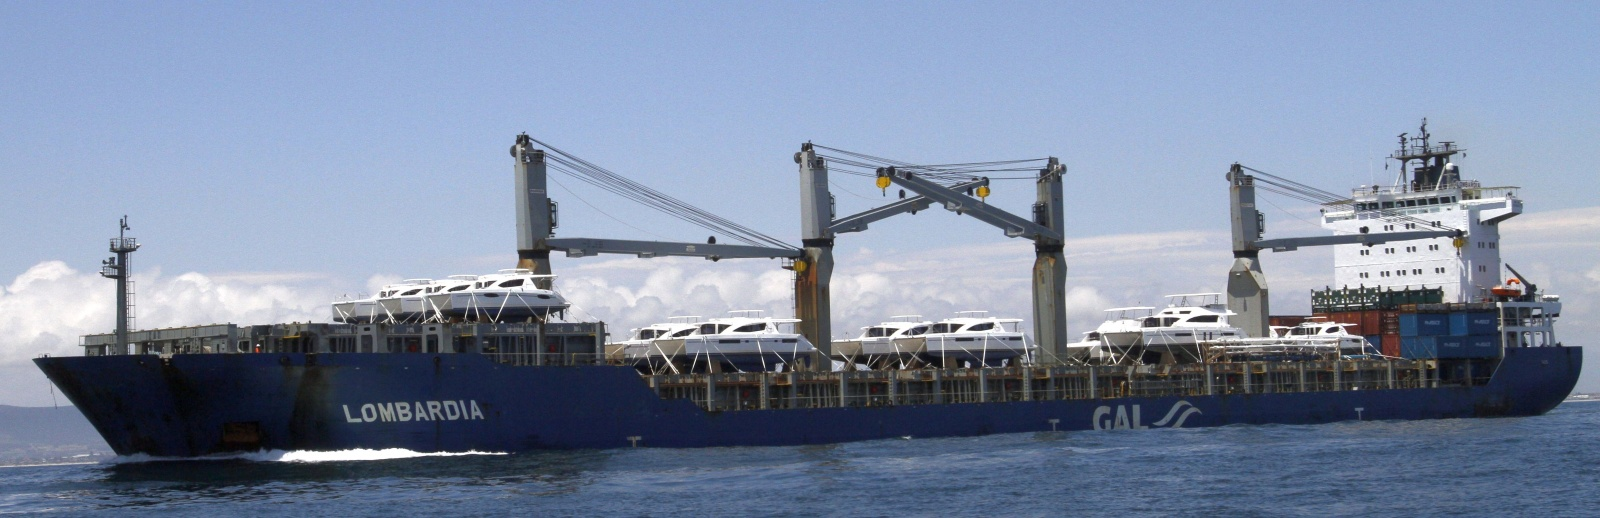 Click image for larger version  Name:December Caribbean-West Palm Ship.jpg Views:181 Size:269.2 KB ID:74463